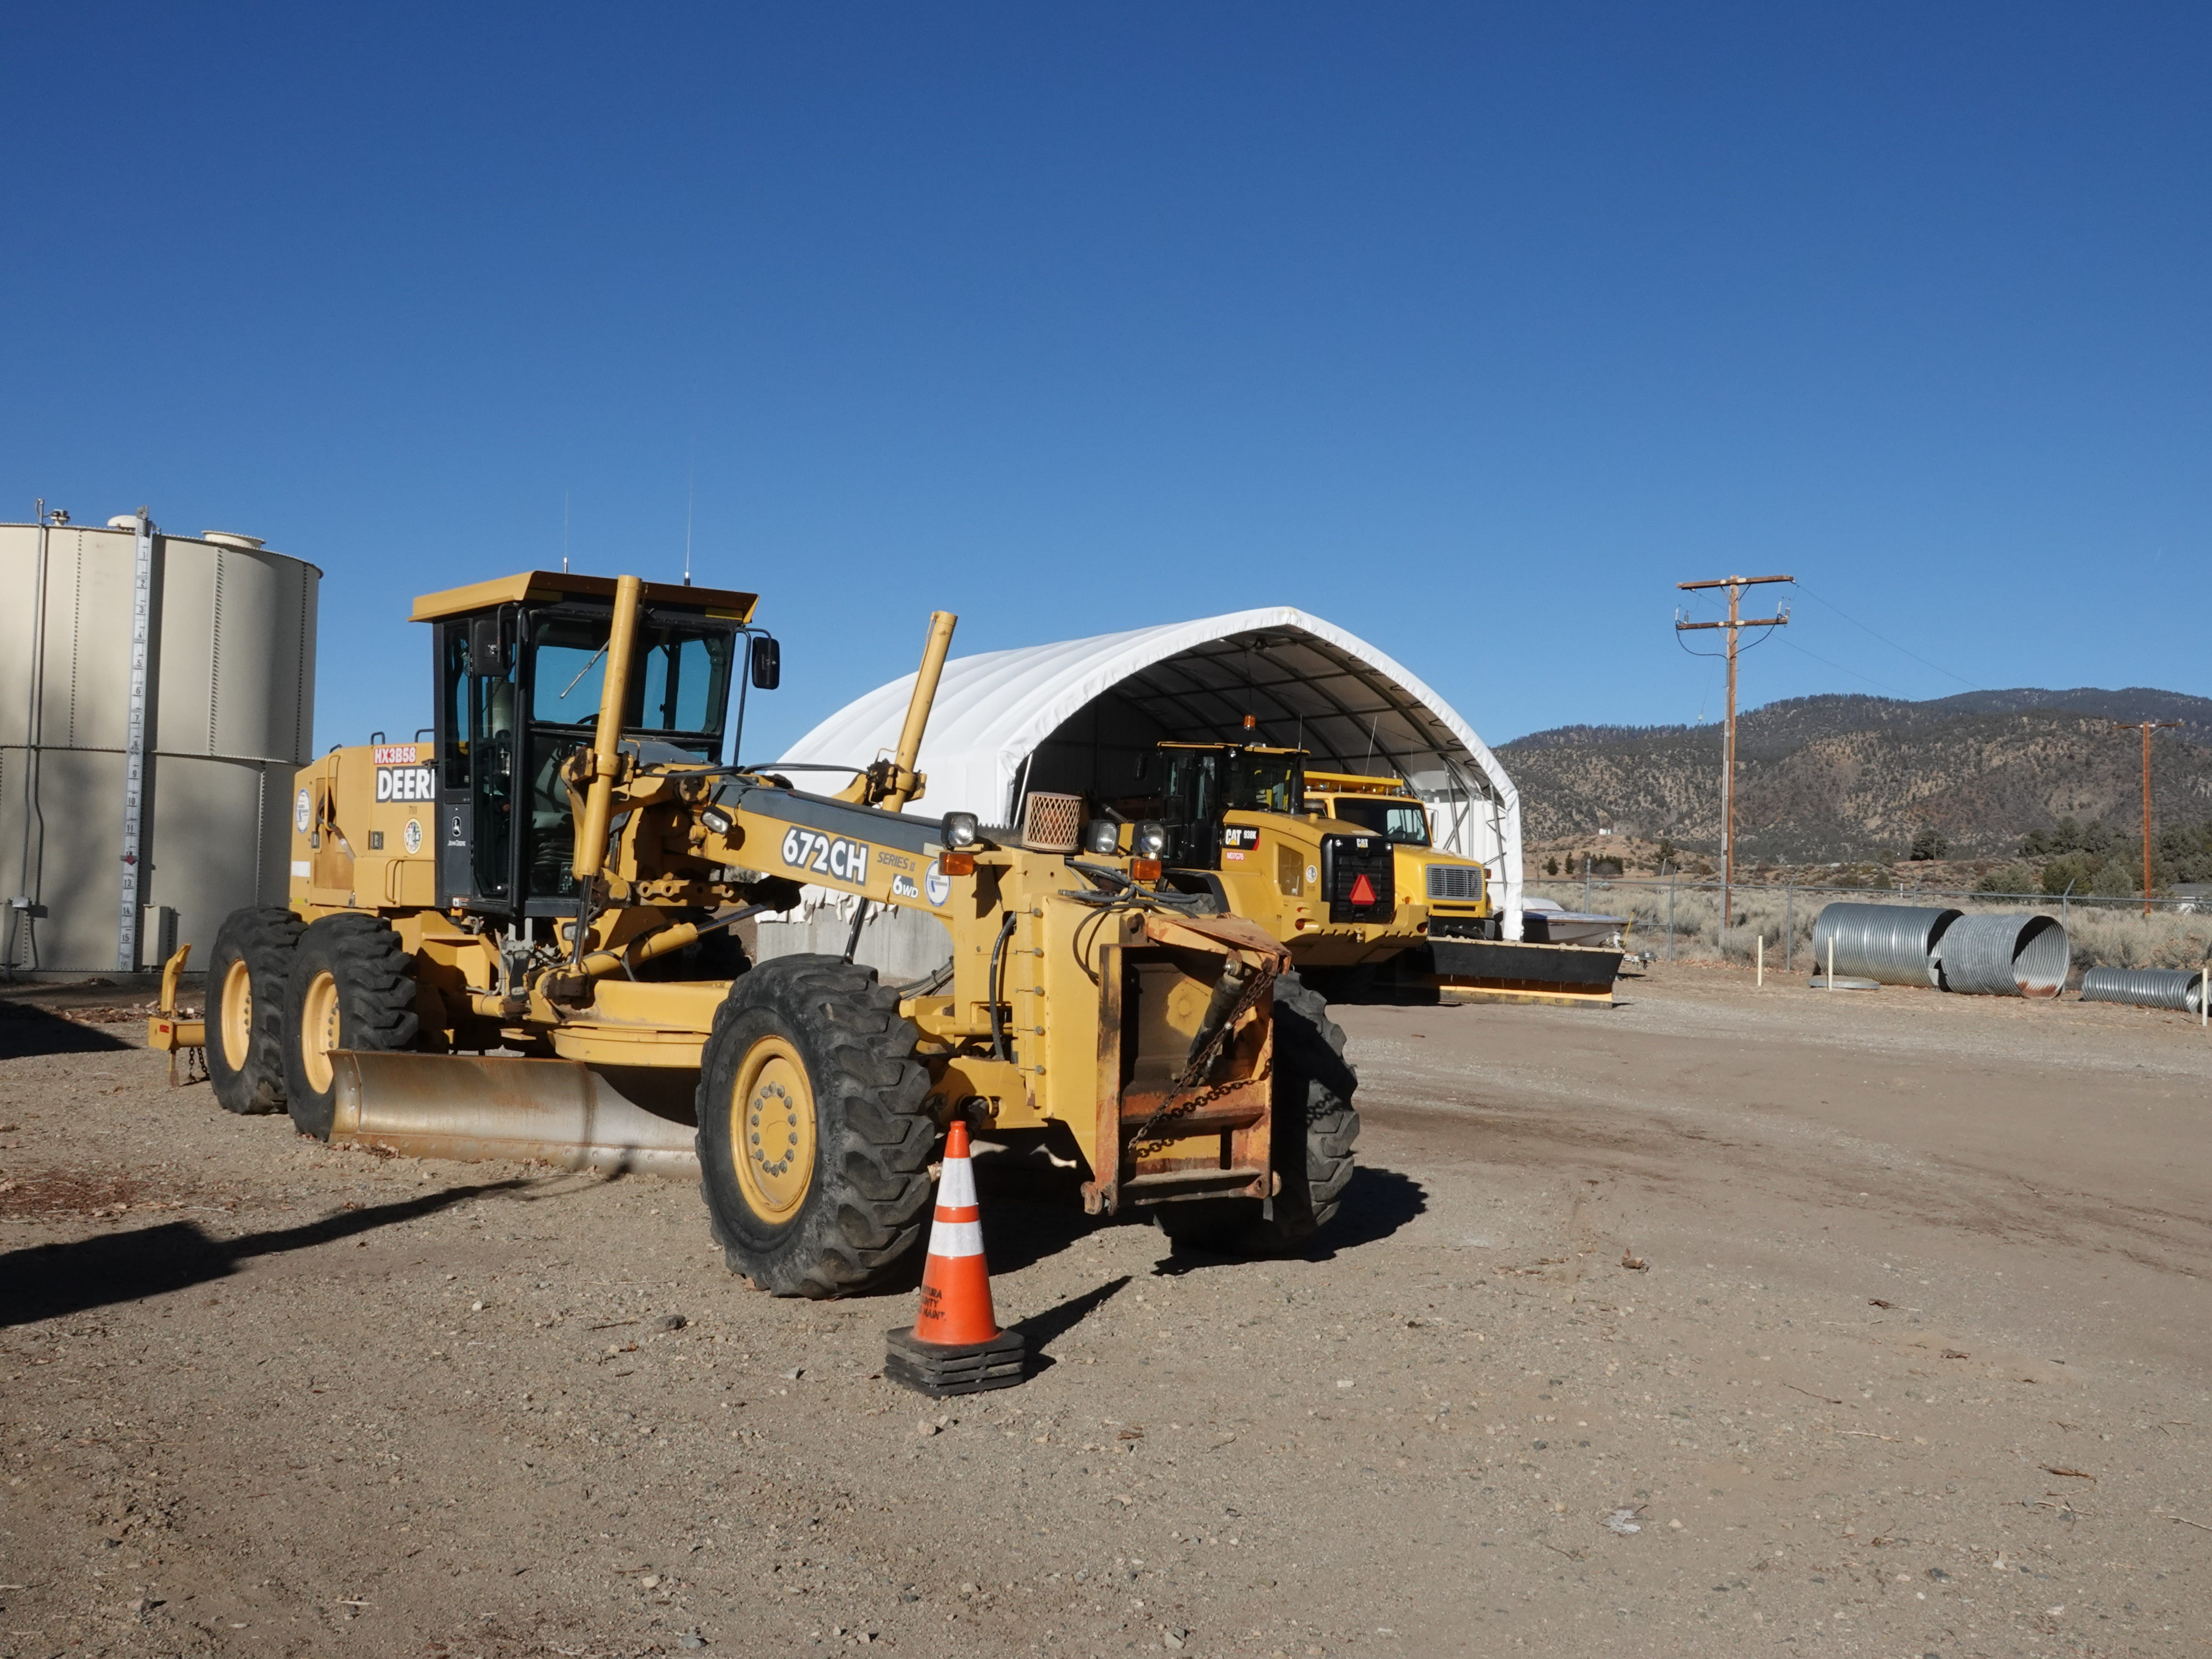 Ventura County road-clearing equipment is kept at a compound in the remote Lockwood Valley where a sheriff's substation, a seasonal fire station and a road maintenance division share space.